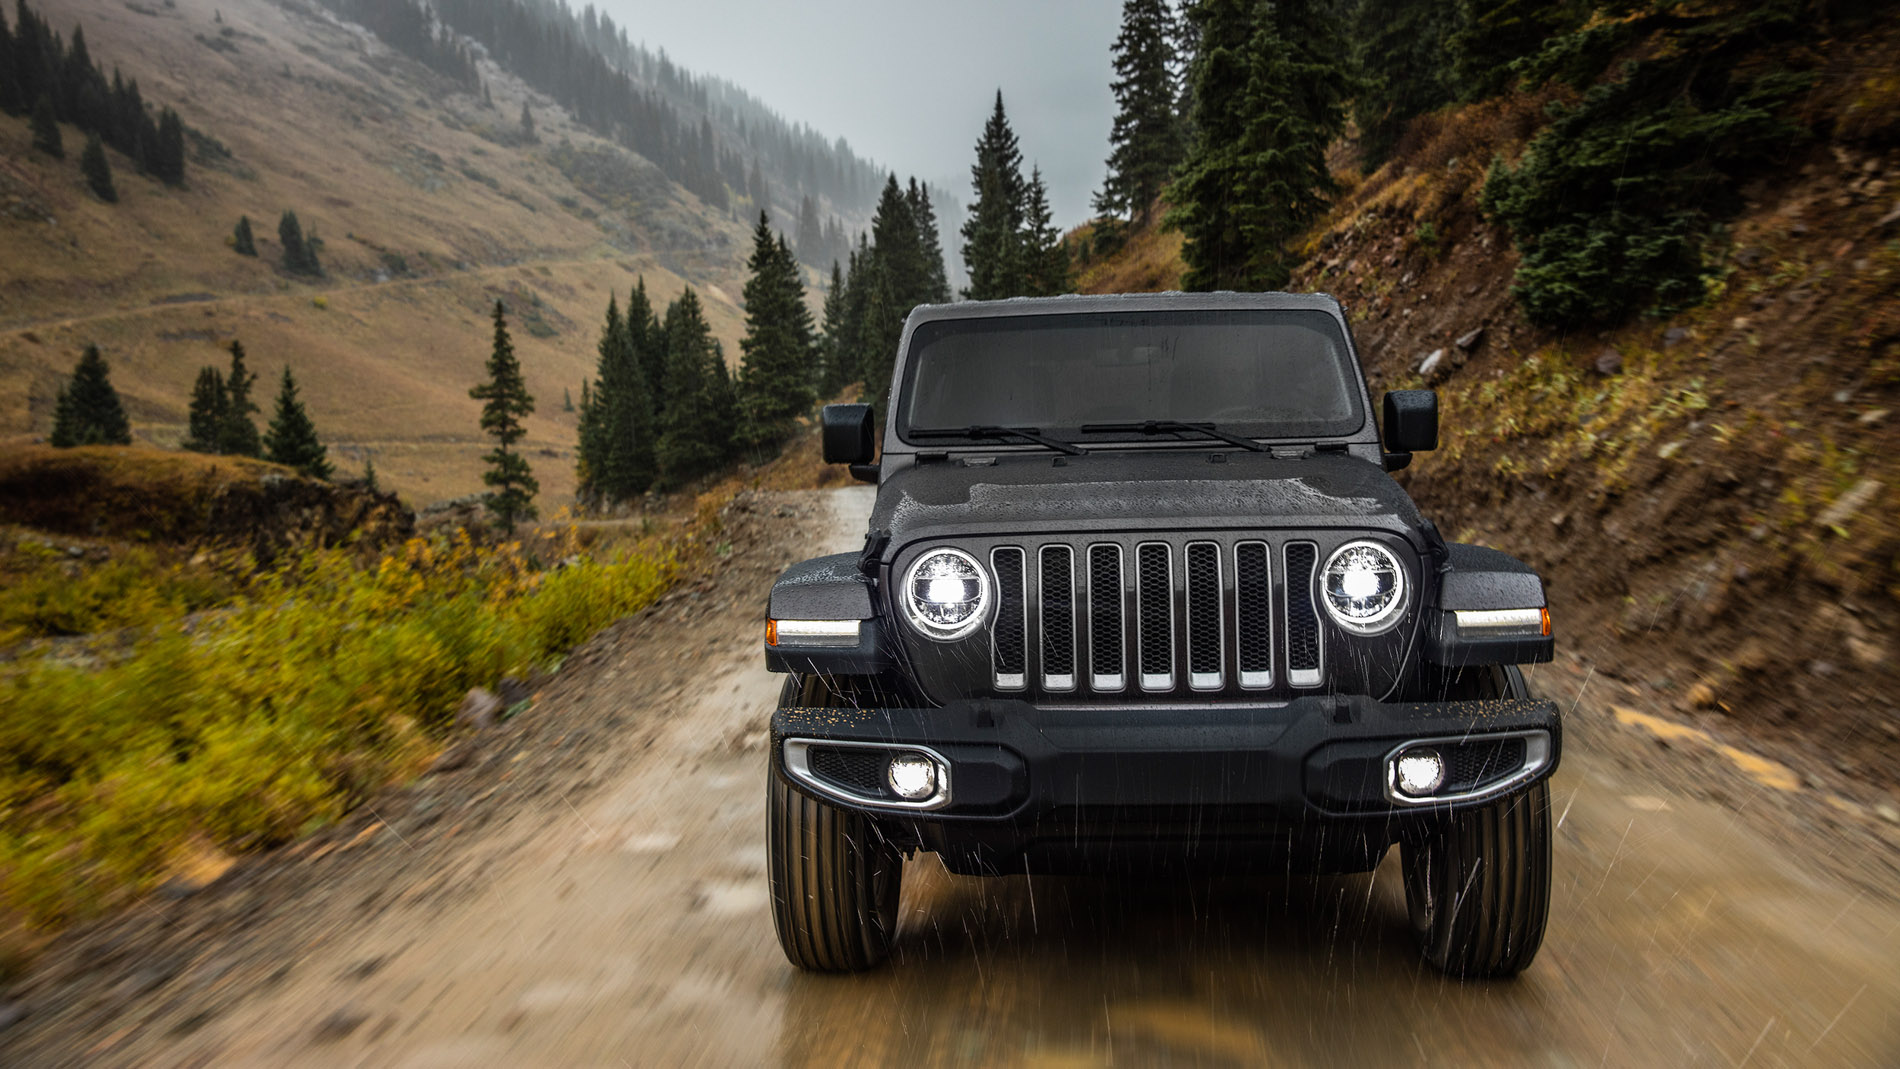 Wallpaper Mobil Jeep 2019 Jeep Wrangler Unlimited Rubicon 1179426 Hd Wallpaper Backgrounds Download